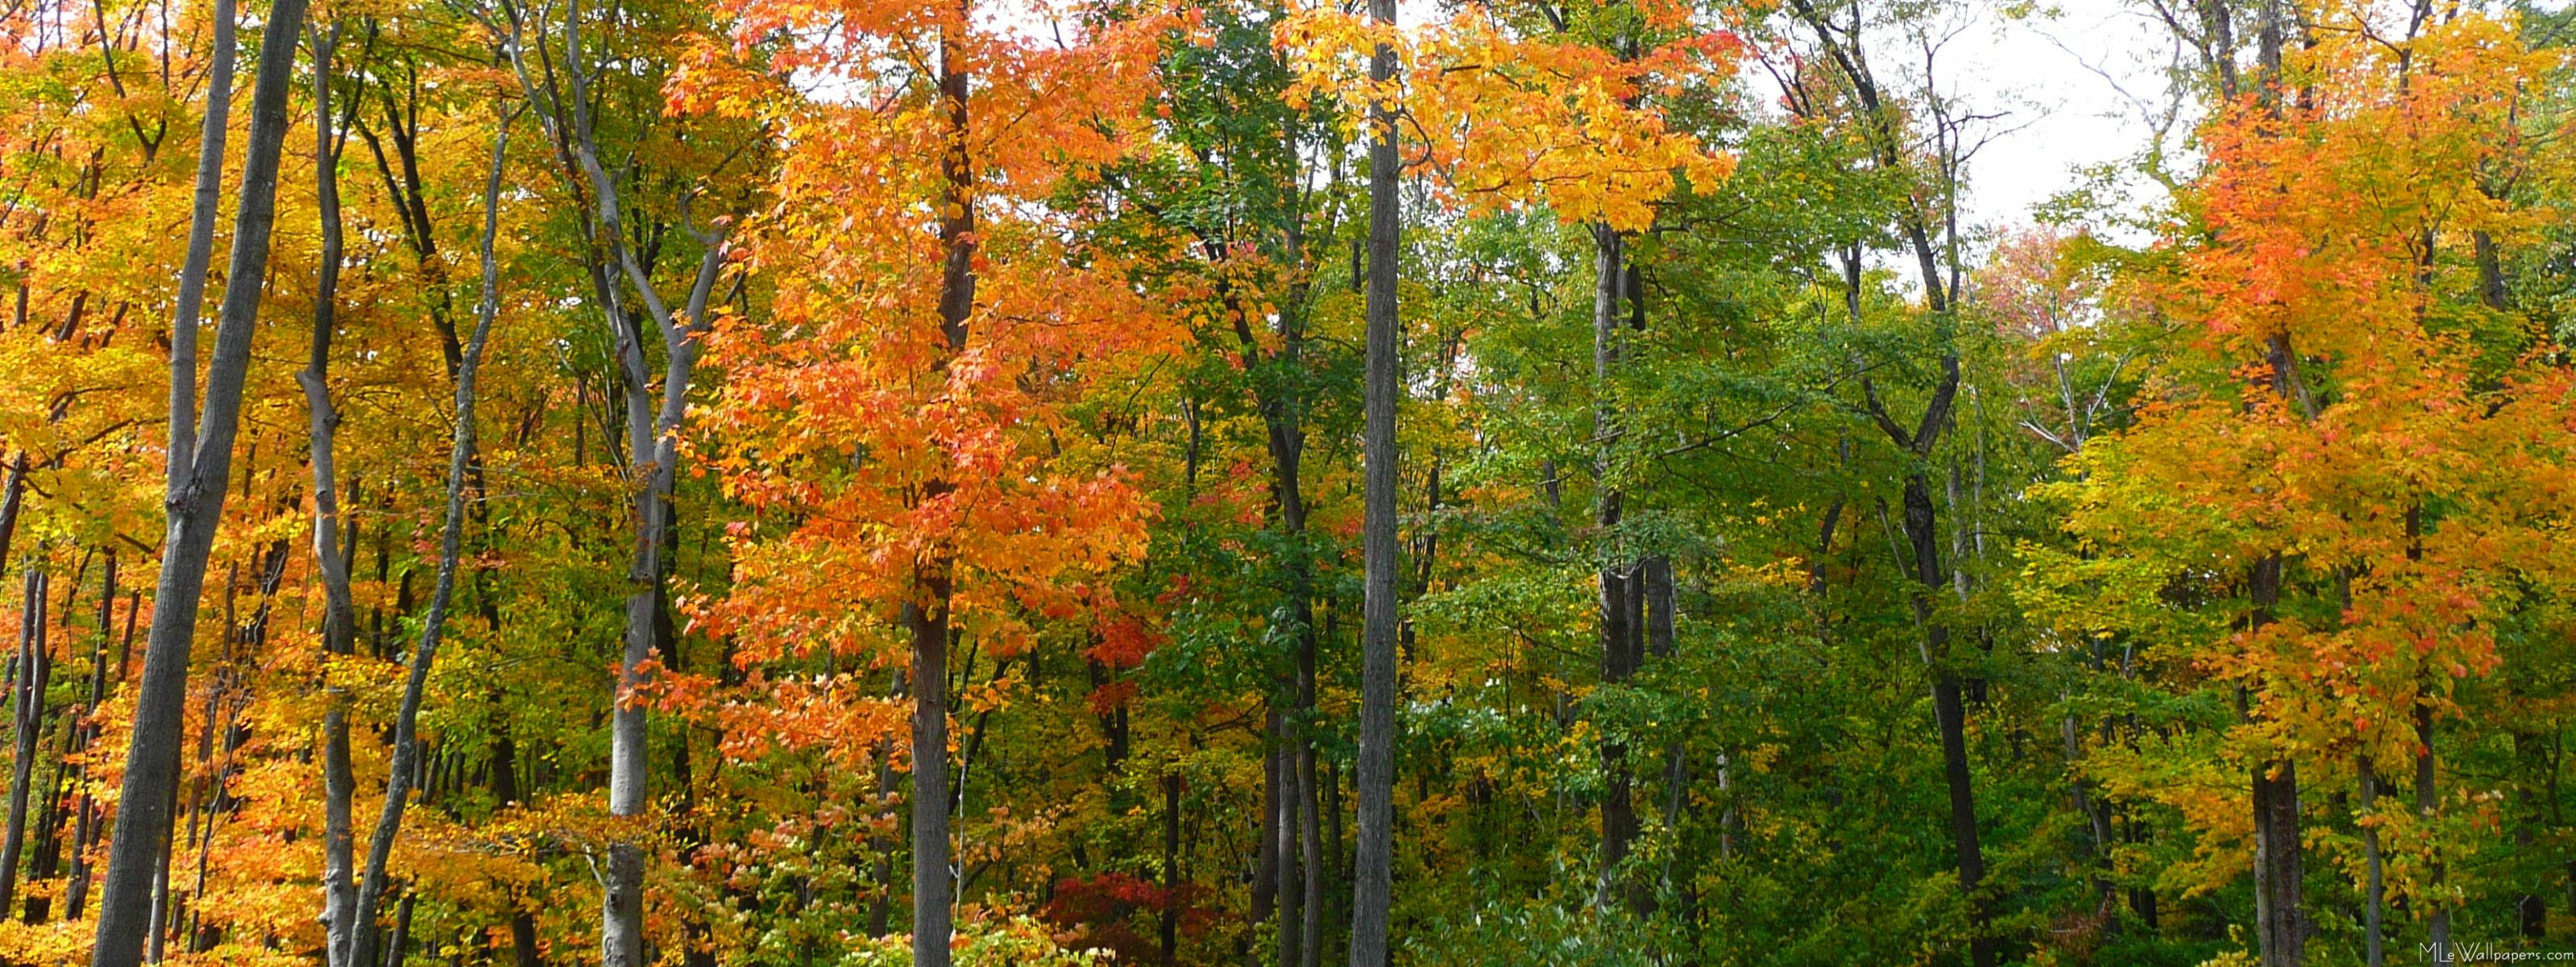 MLeWallpapers.com - Fall Maple Trees